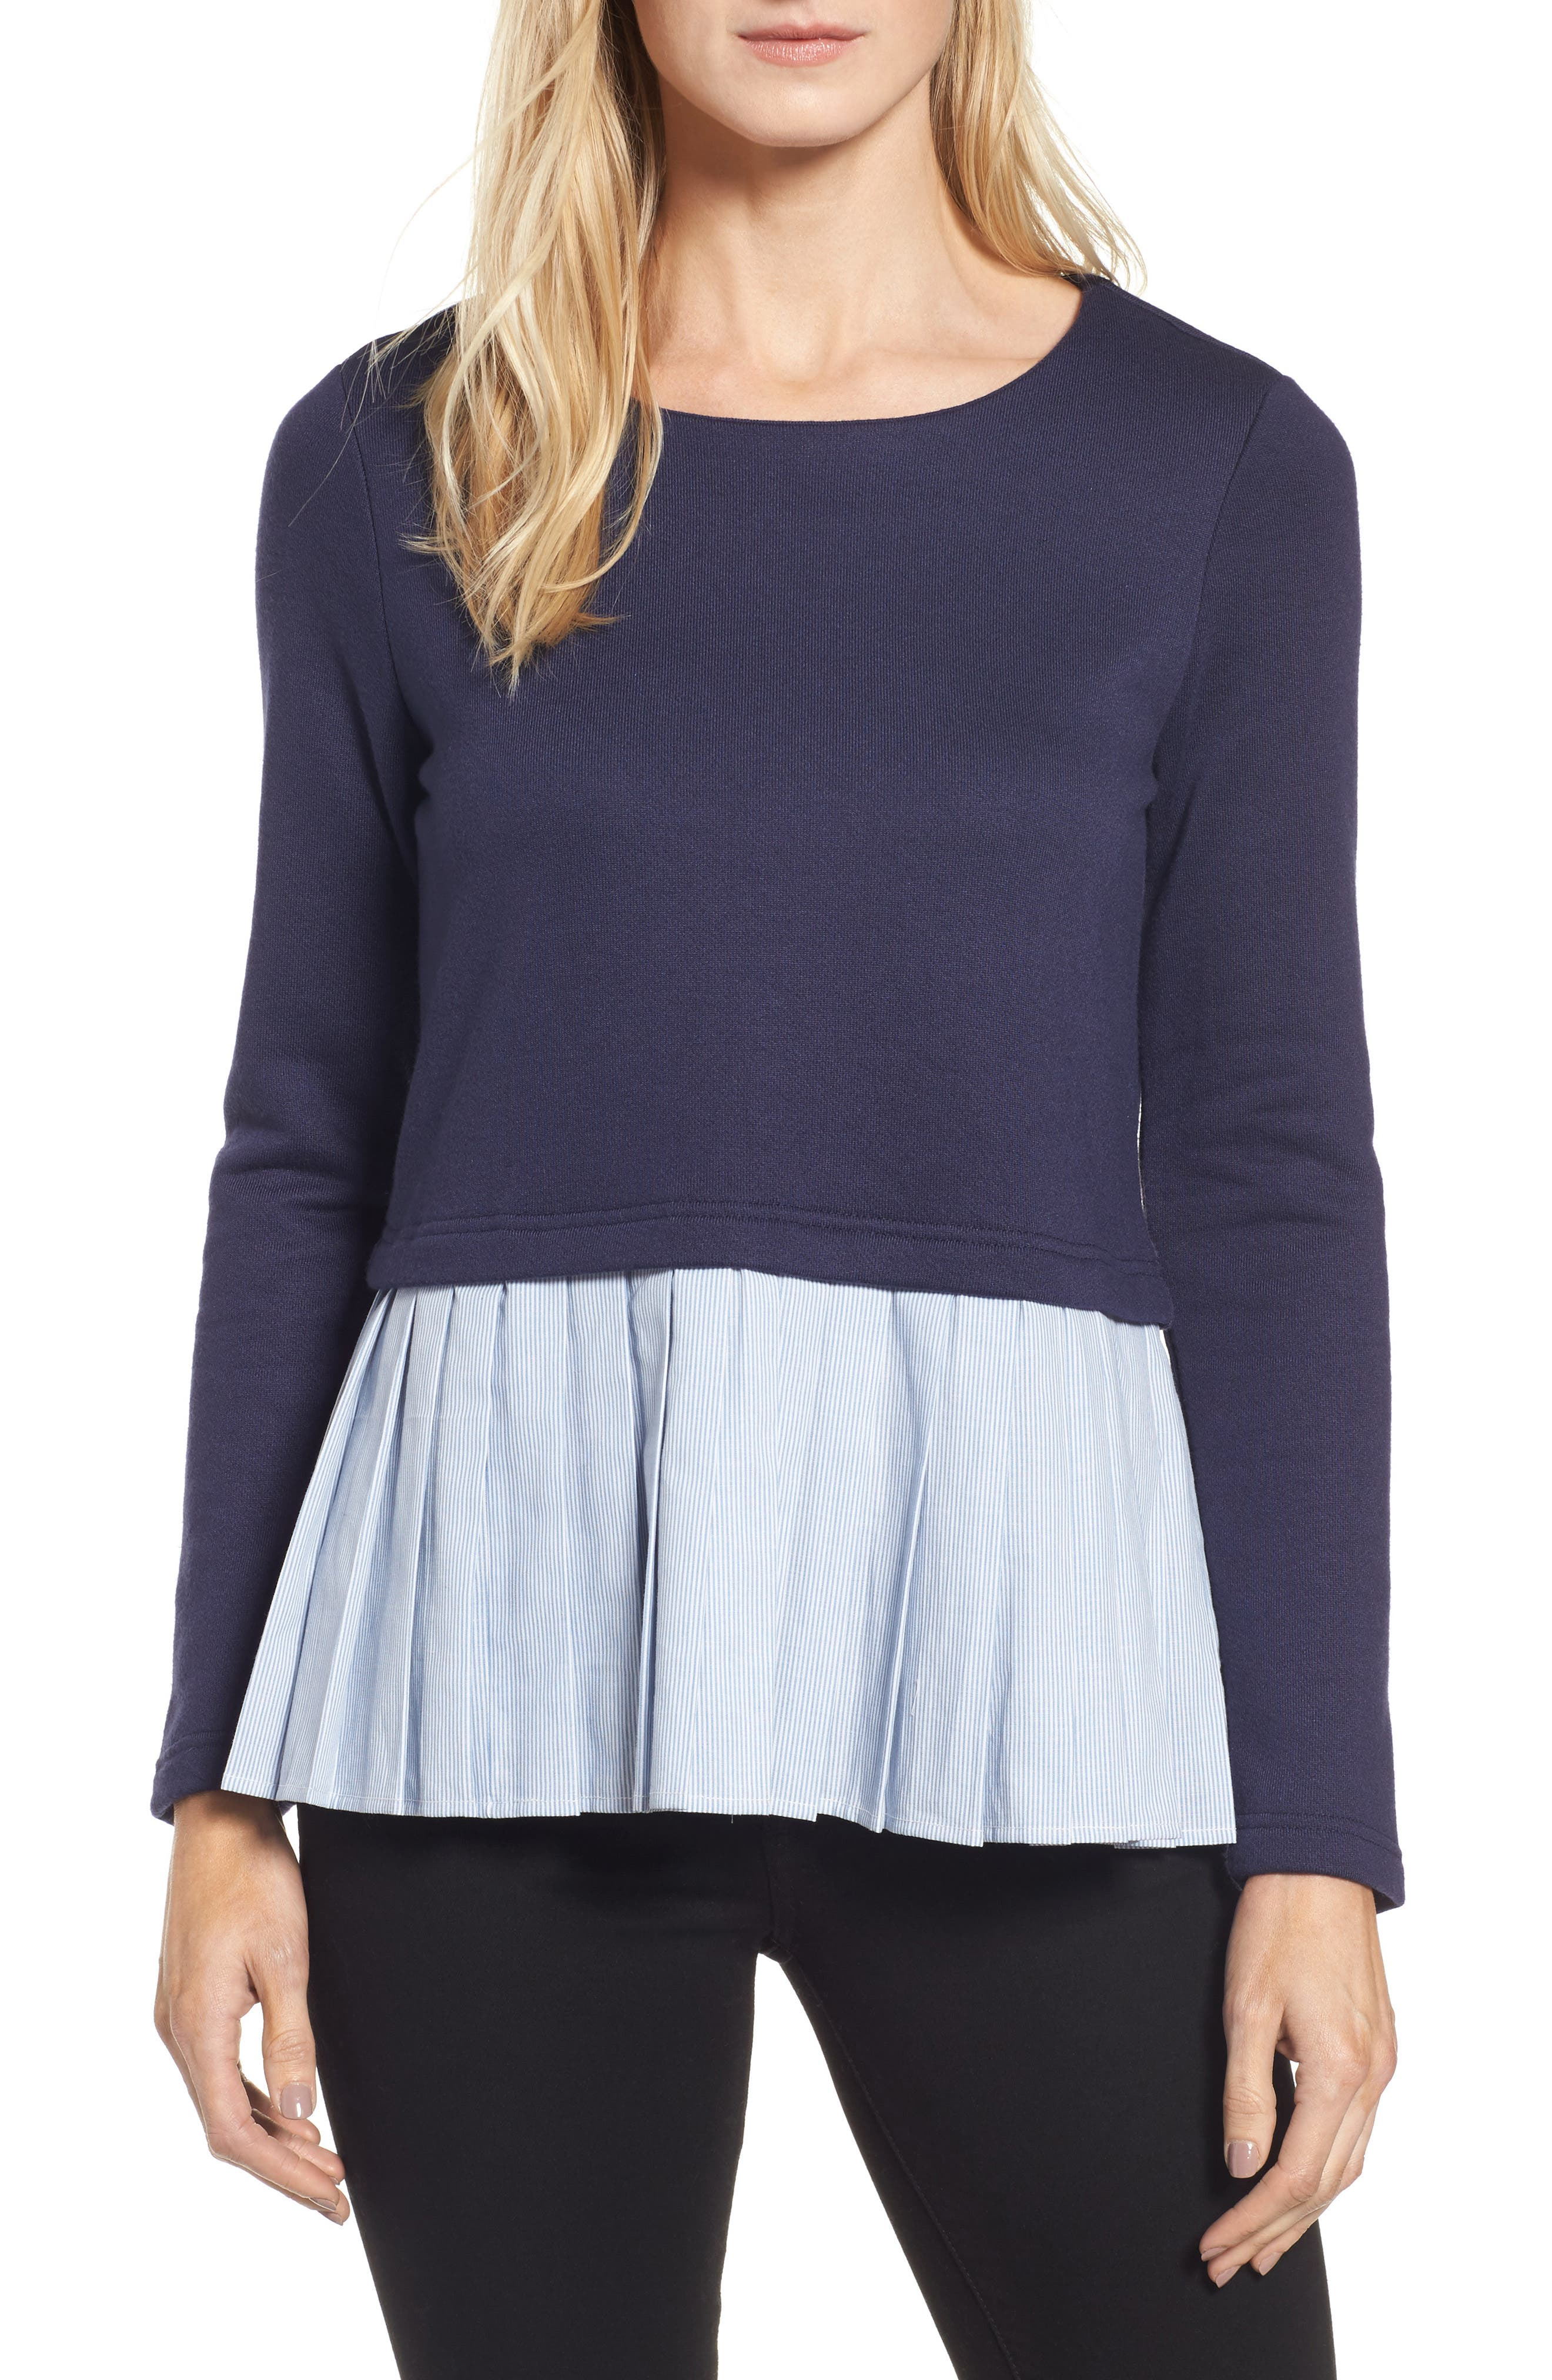 Pleione Pleat Inset French Terry Top (Regular & Petite)